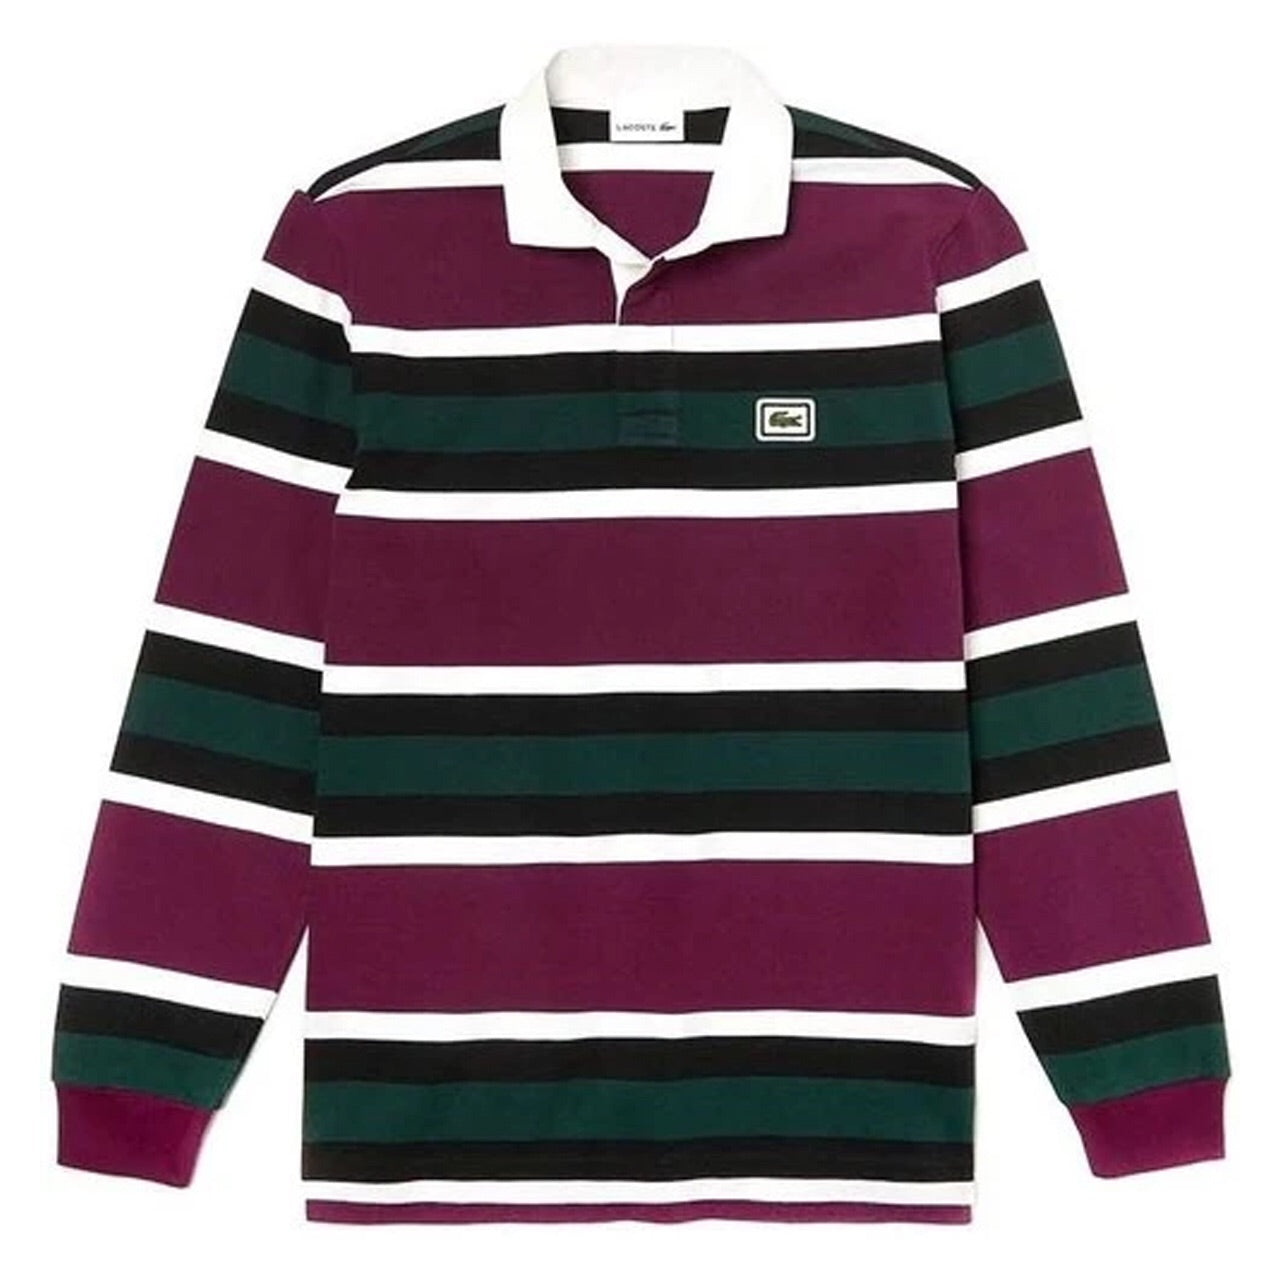 Lacoste Striped Rugby Polo Shirt Bordeaux KH8633